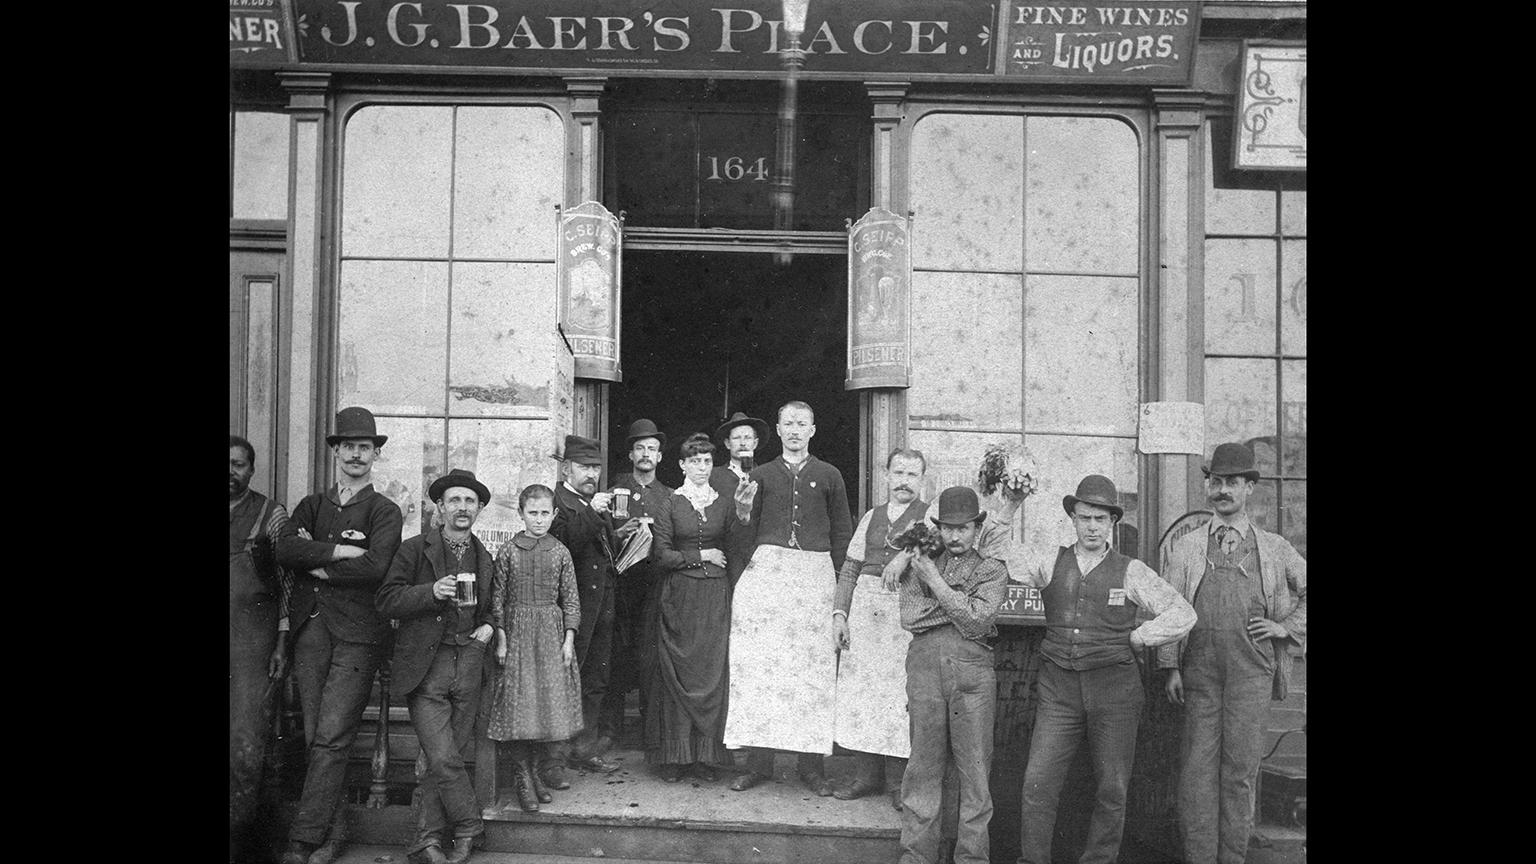 A group of Chicagoans outside J.G. Baer's Place, where signs advertise pilsners made by the C. Seipp Brew Co., which survived the Great Chicago Fire of 1871. (Chicago History Museum)